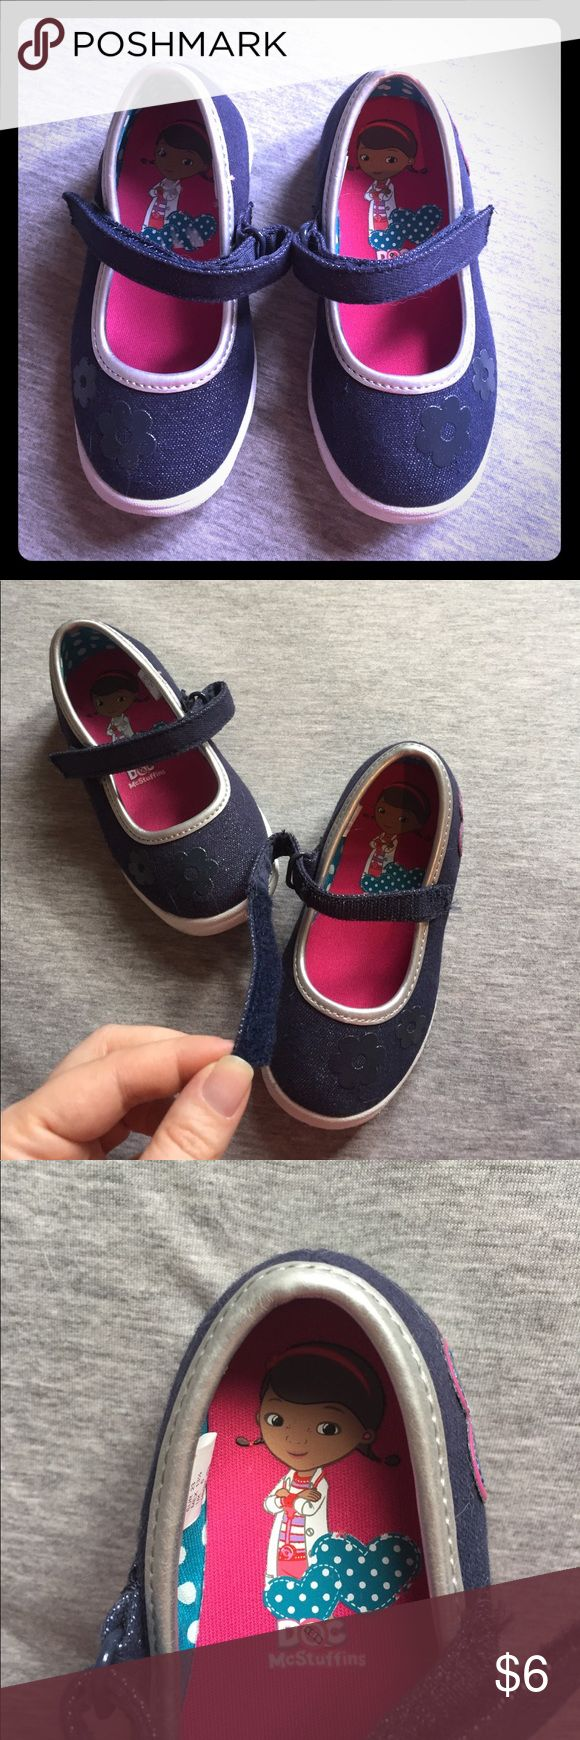 Disney Doc McStuffins mary janes Disney for Payless dark chambray Doc McStuffins mary janes with Velcro straps for easy on and off. Toddler size 6.5, fit is true to size. My daughter has a wide foot and these fit fine. Rubber soles make for great play shoes! Disney Shoes